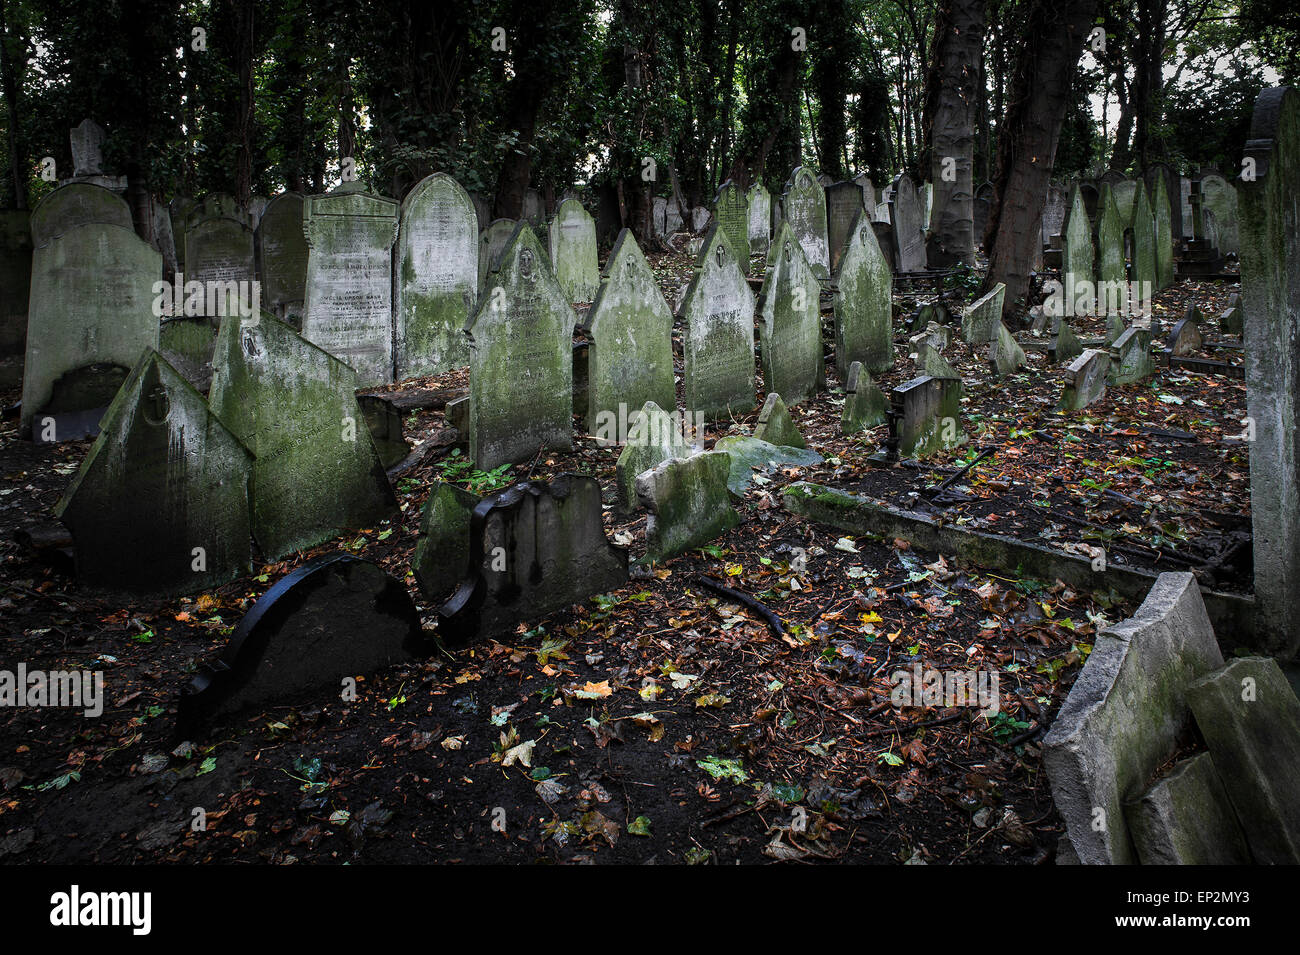 Tower Hamlets Cemetery in the East End of London. - Stock Image